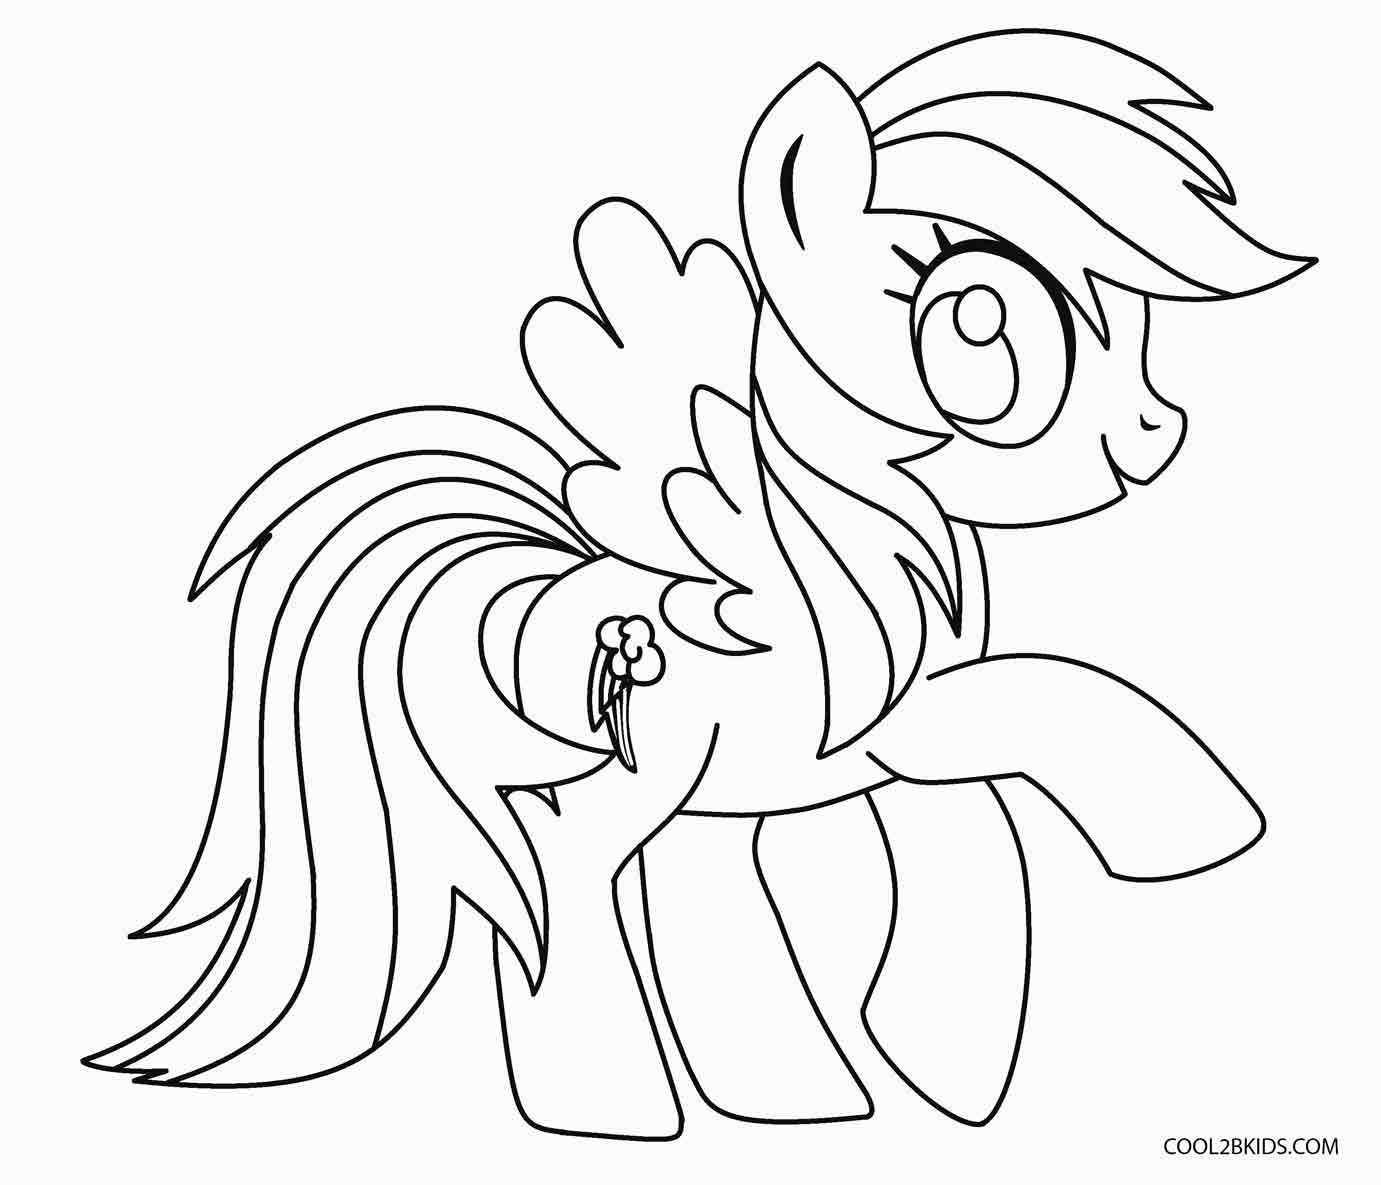 pony to color free printable my little pony coloring pages for kids pony to color